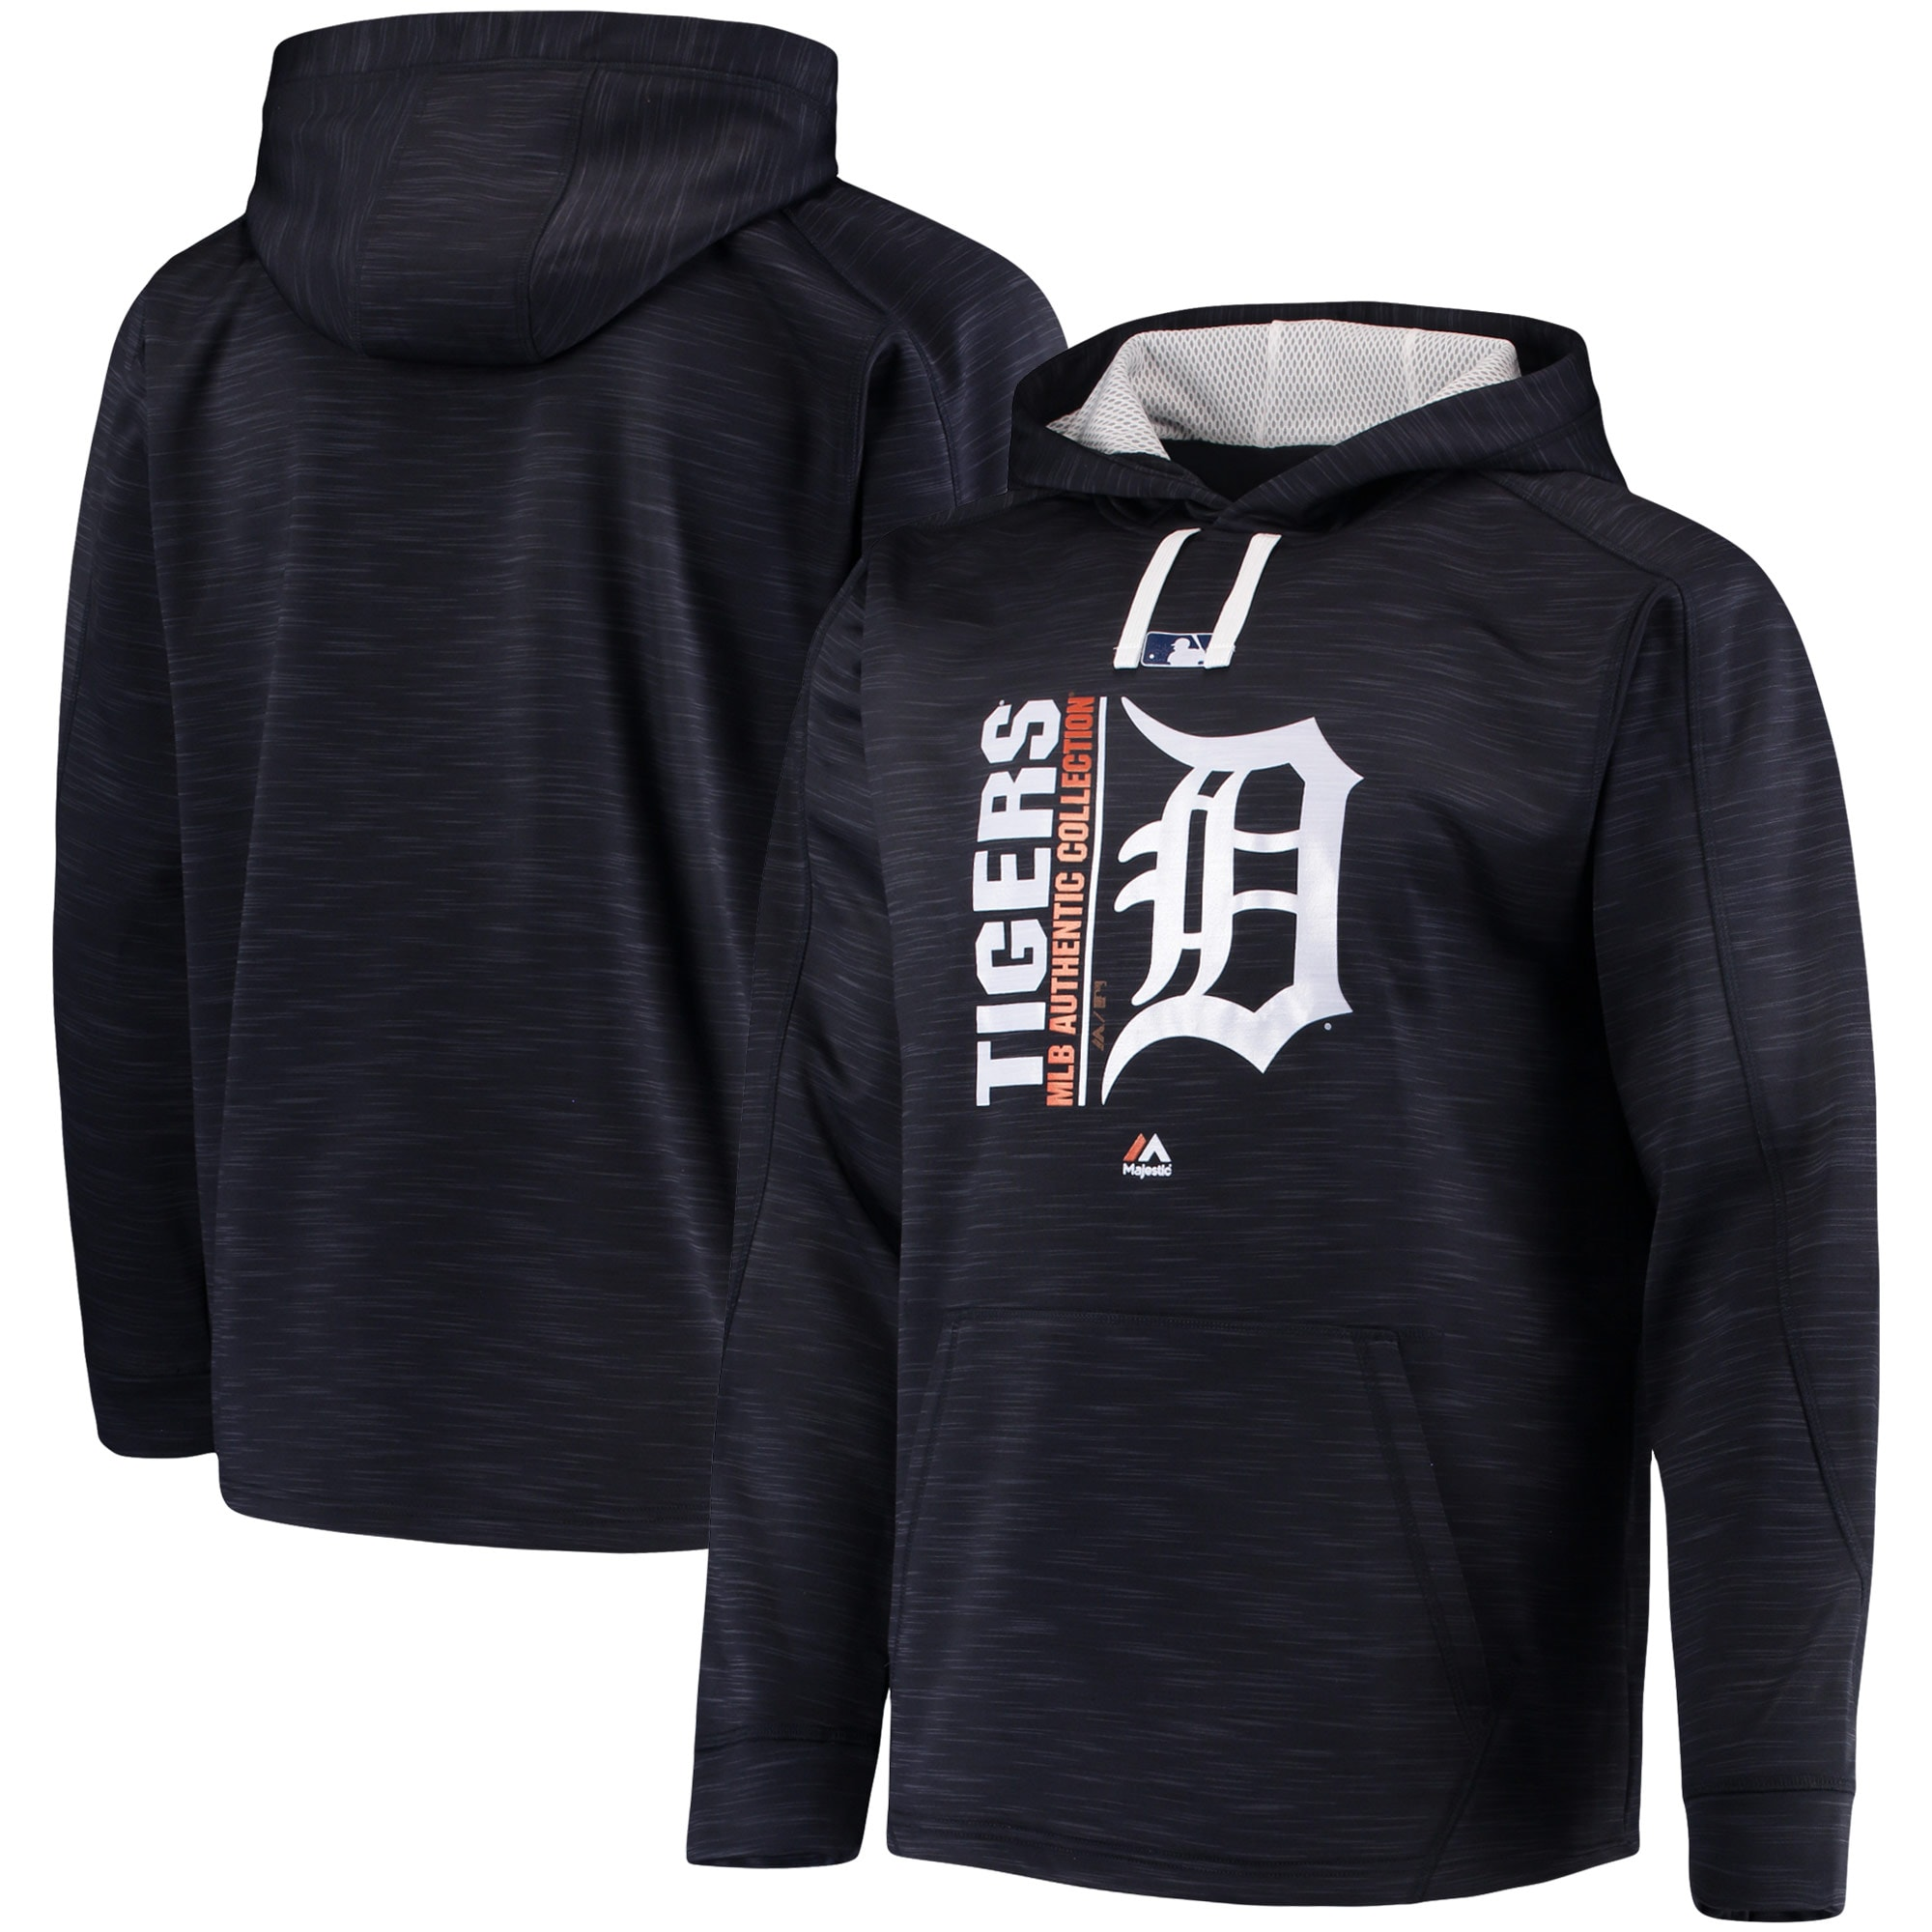 Detroit Tigers Majestic Authentic Collection Team Icon Streak Fleece Pullover Hoodie - Navy/White